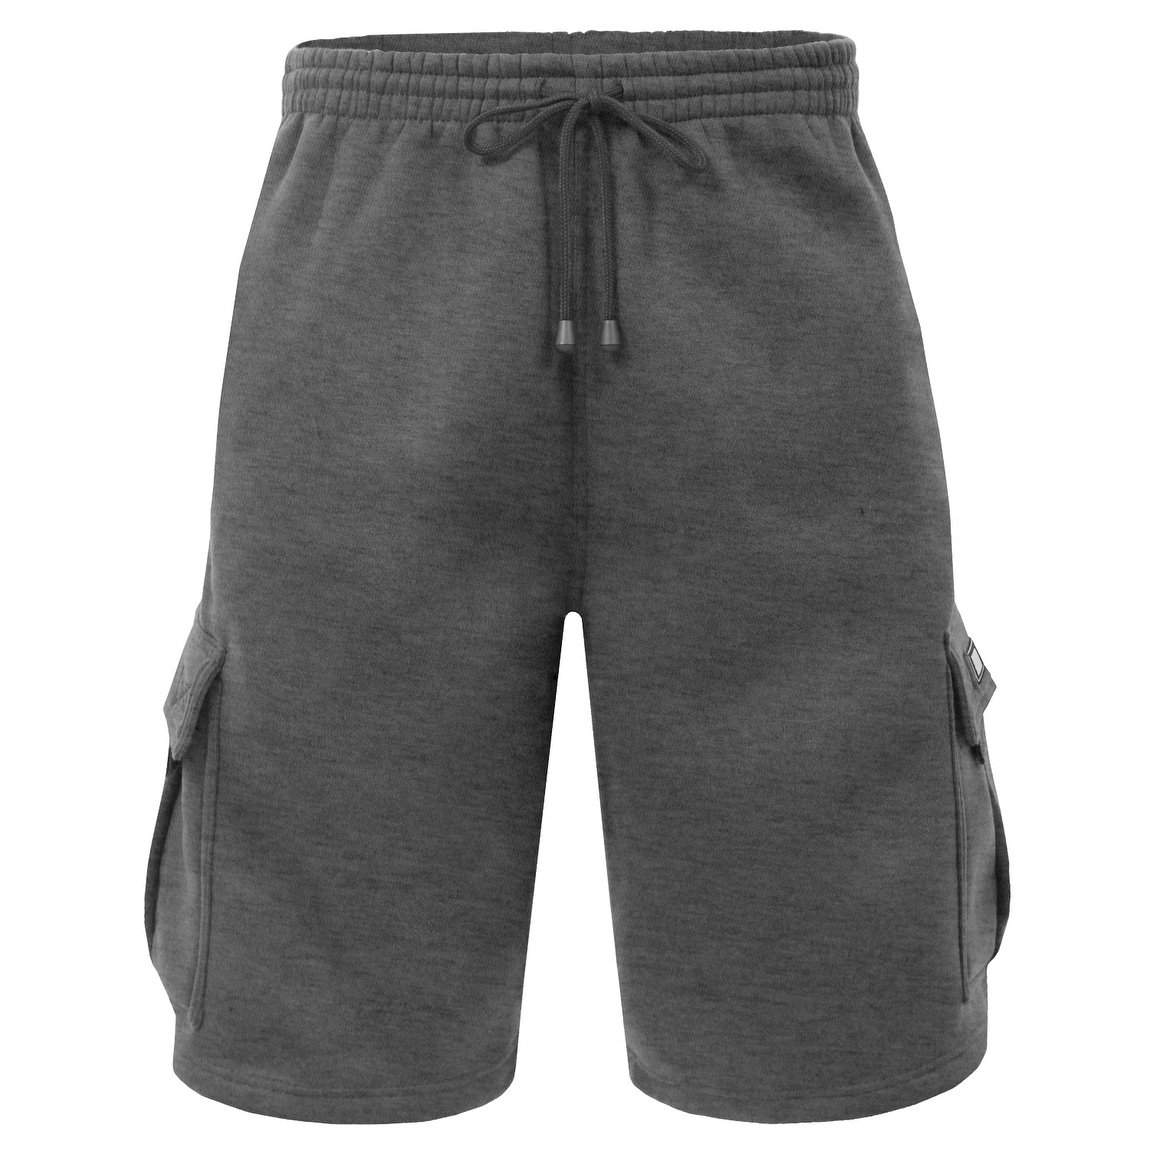 Asysst Mens Casual Fleece Cargo Sweat Shorts with Elastic Waist